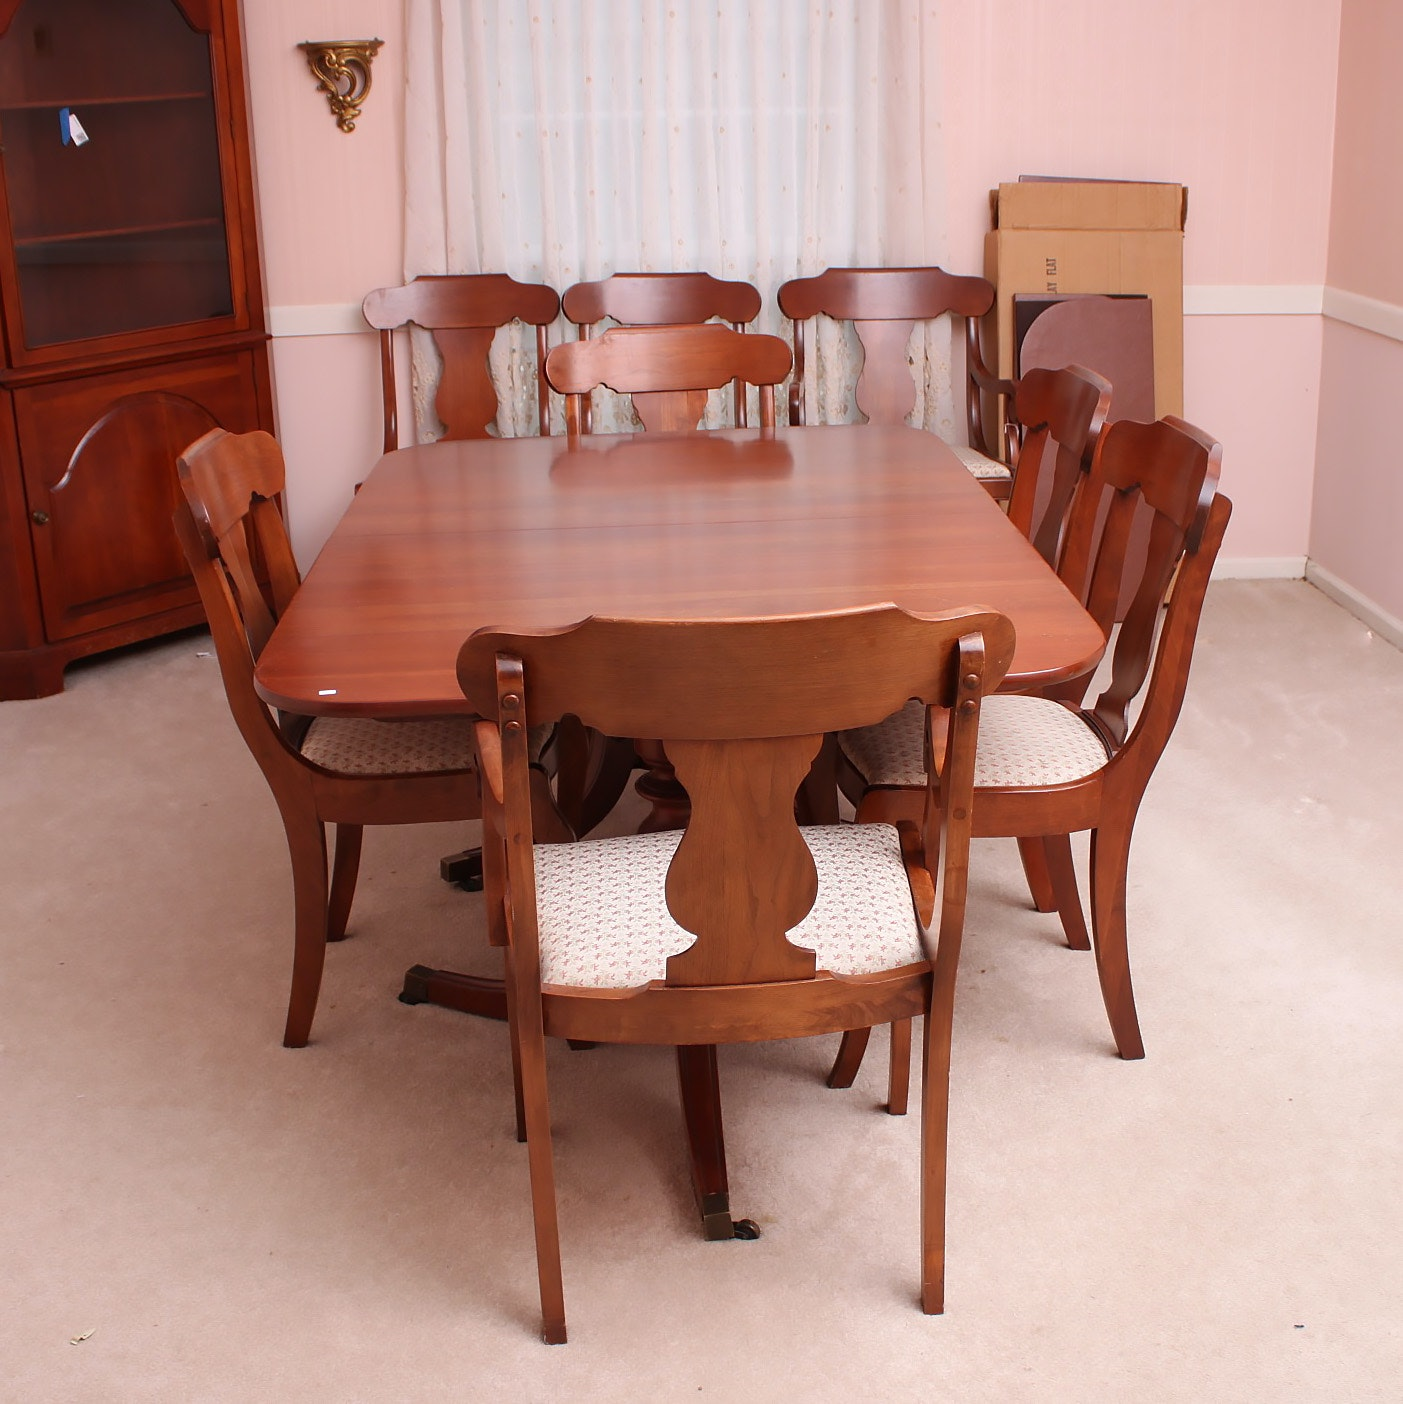 Vintage Cherry Dining Table with Empire Style Chairs